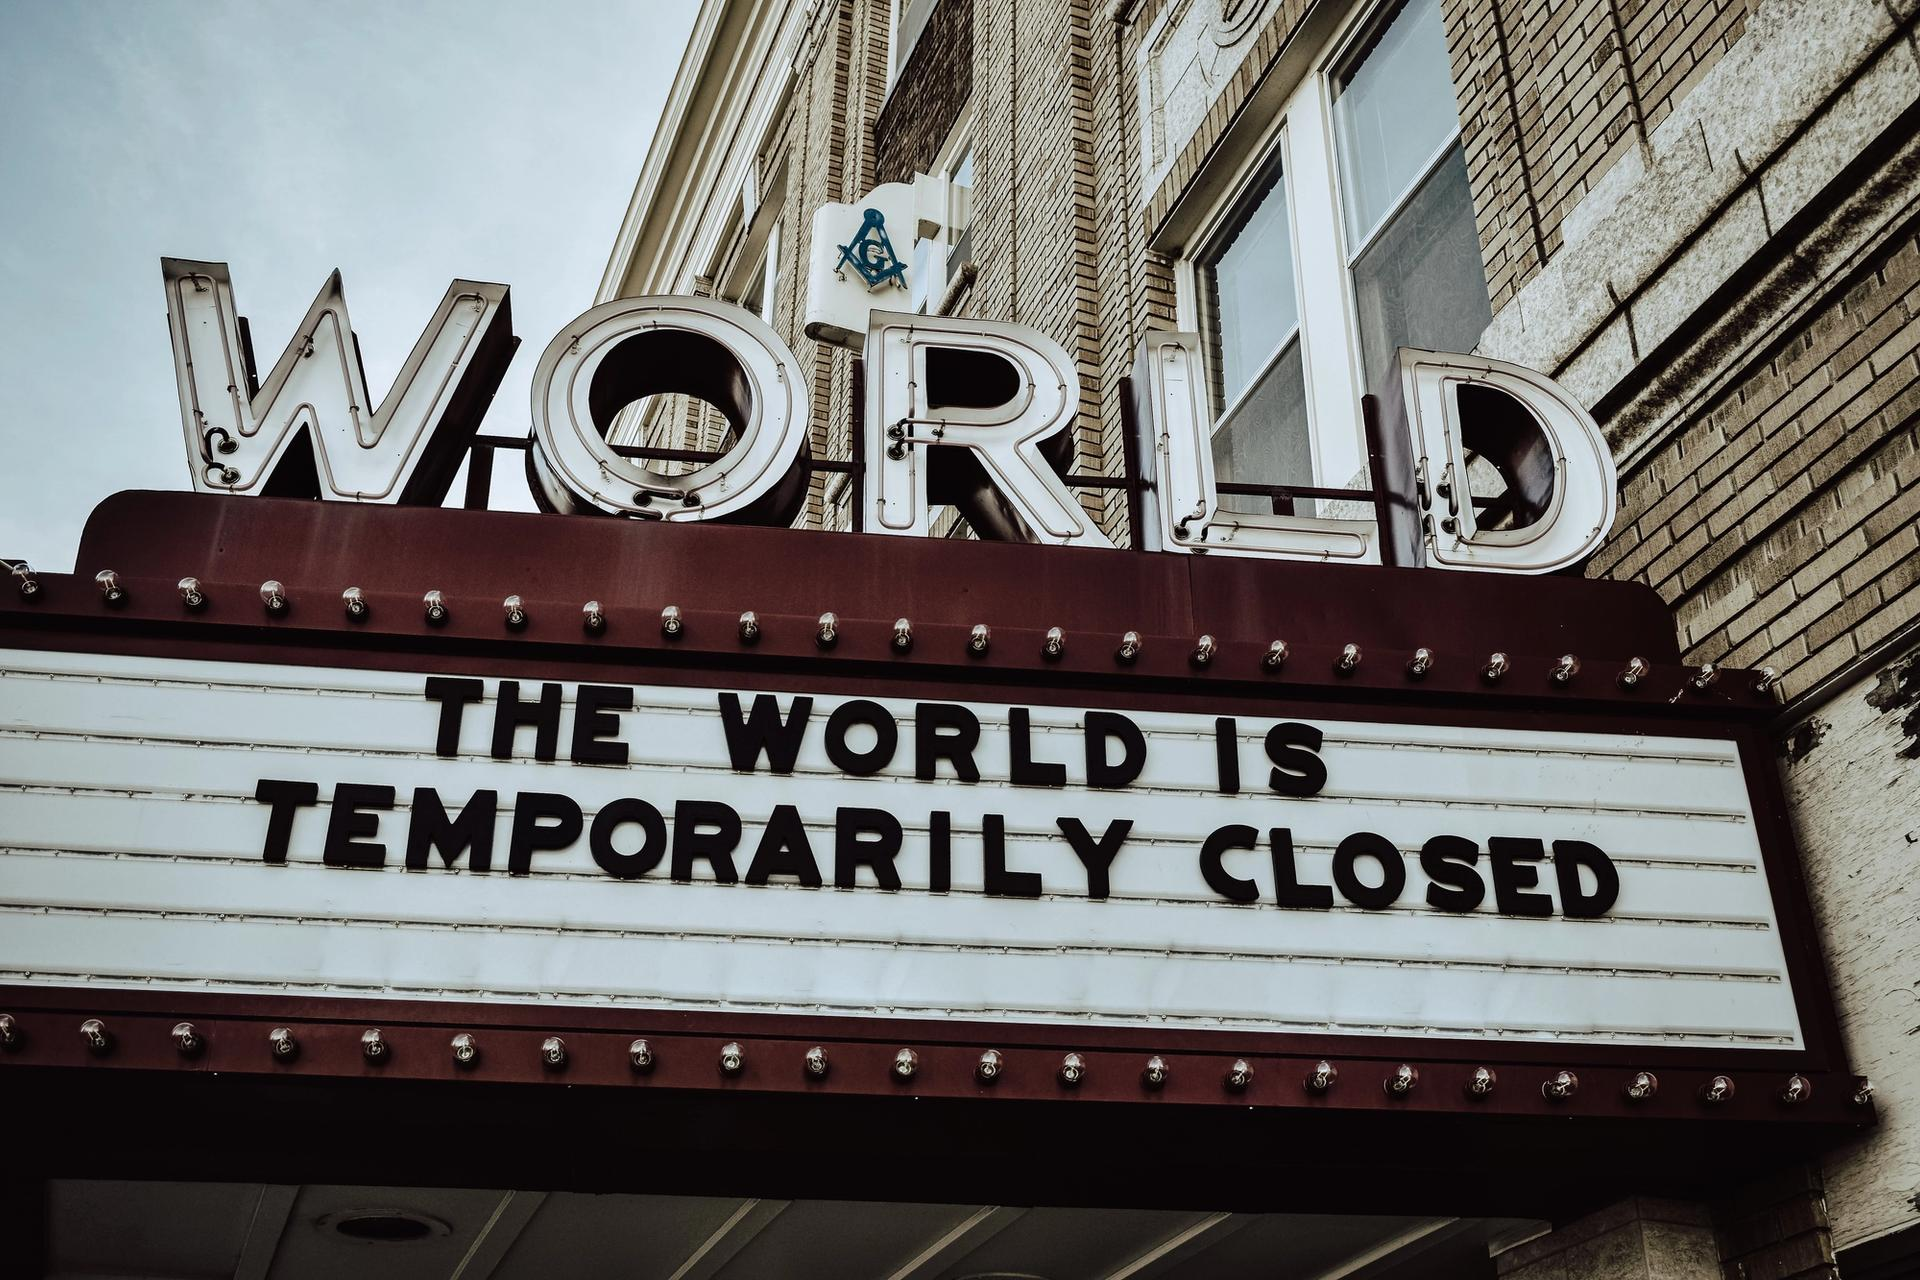 Theatres and performing arts venues across the US have been closed during the coronavirus pandemic, resulting in the lost of thousands of jobs Photo: Edwin Hooper on Unsplash